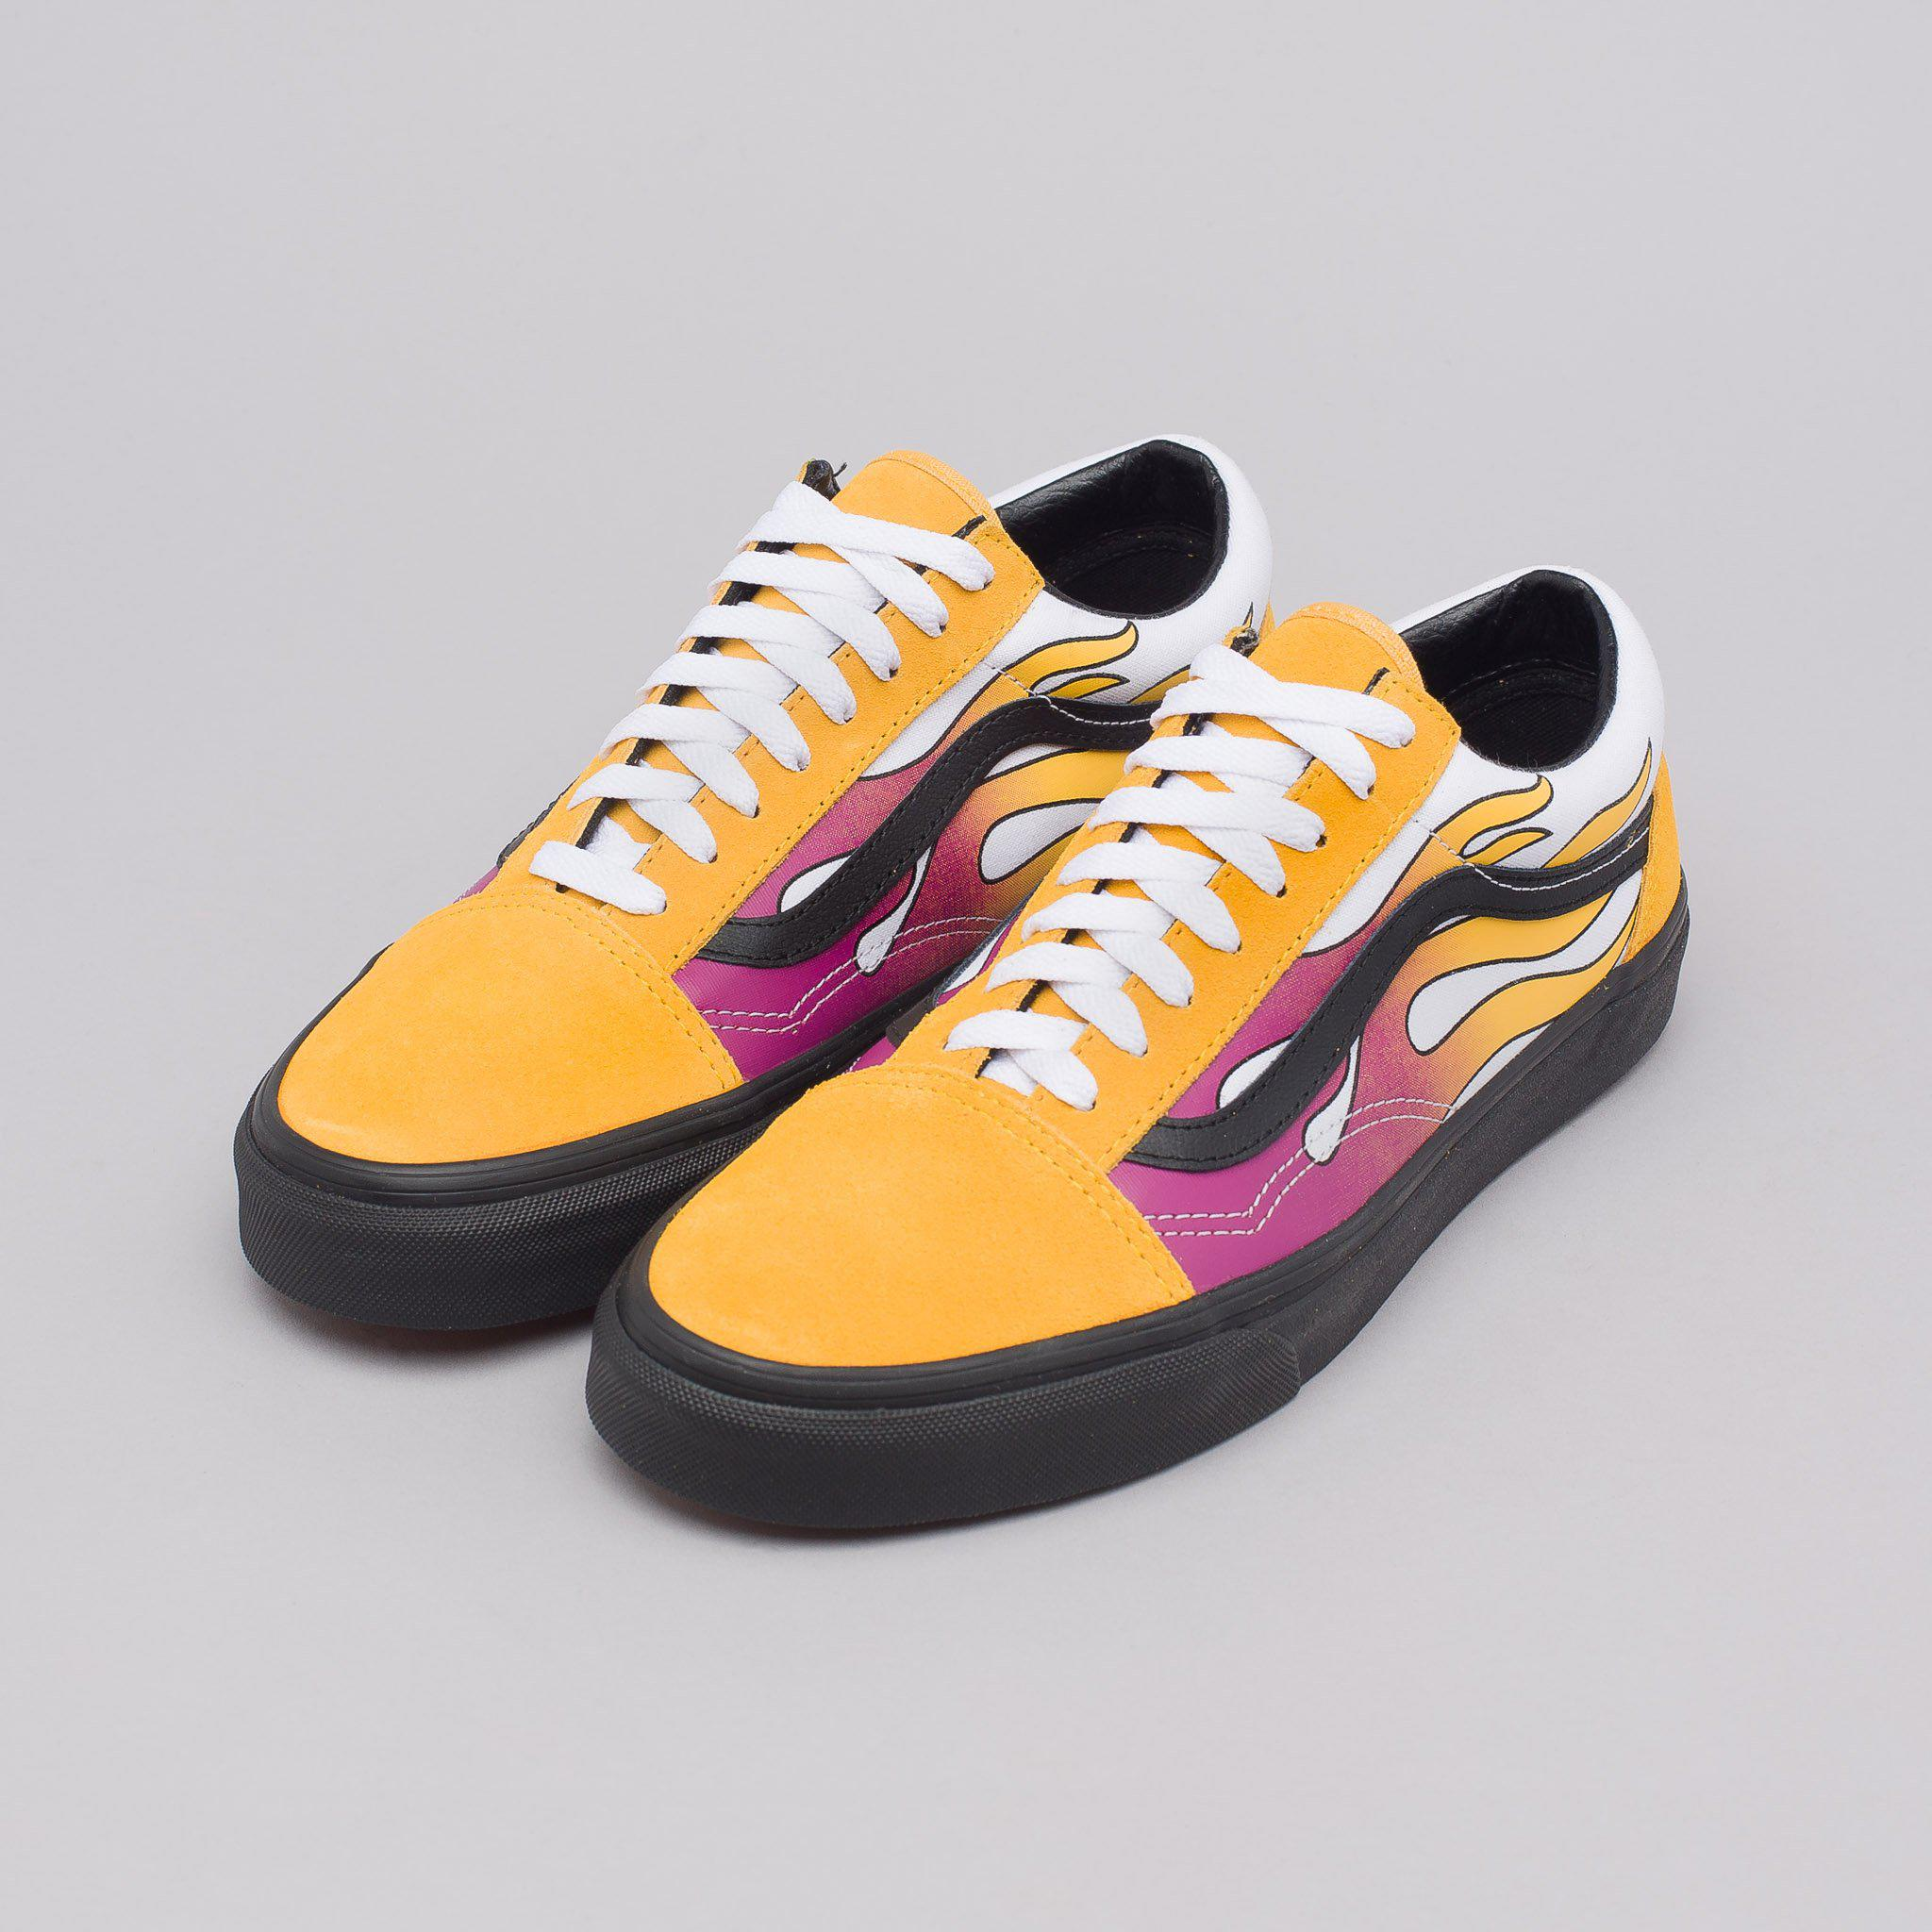 2eb5a61cbcc Lyst - Vans Old Skool Flame In Banana Yellow in Yellow for Men